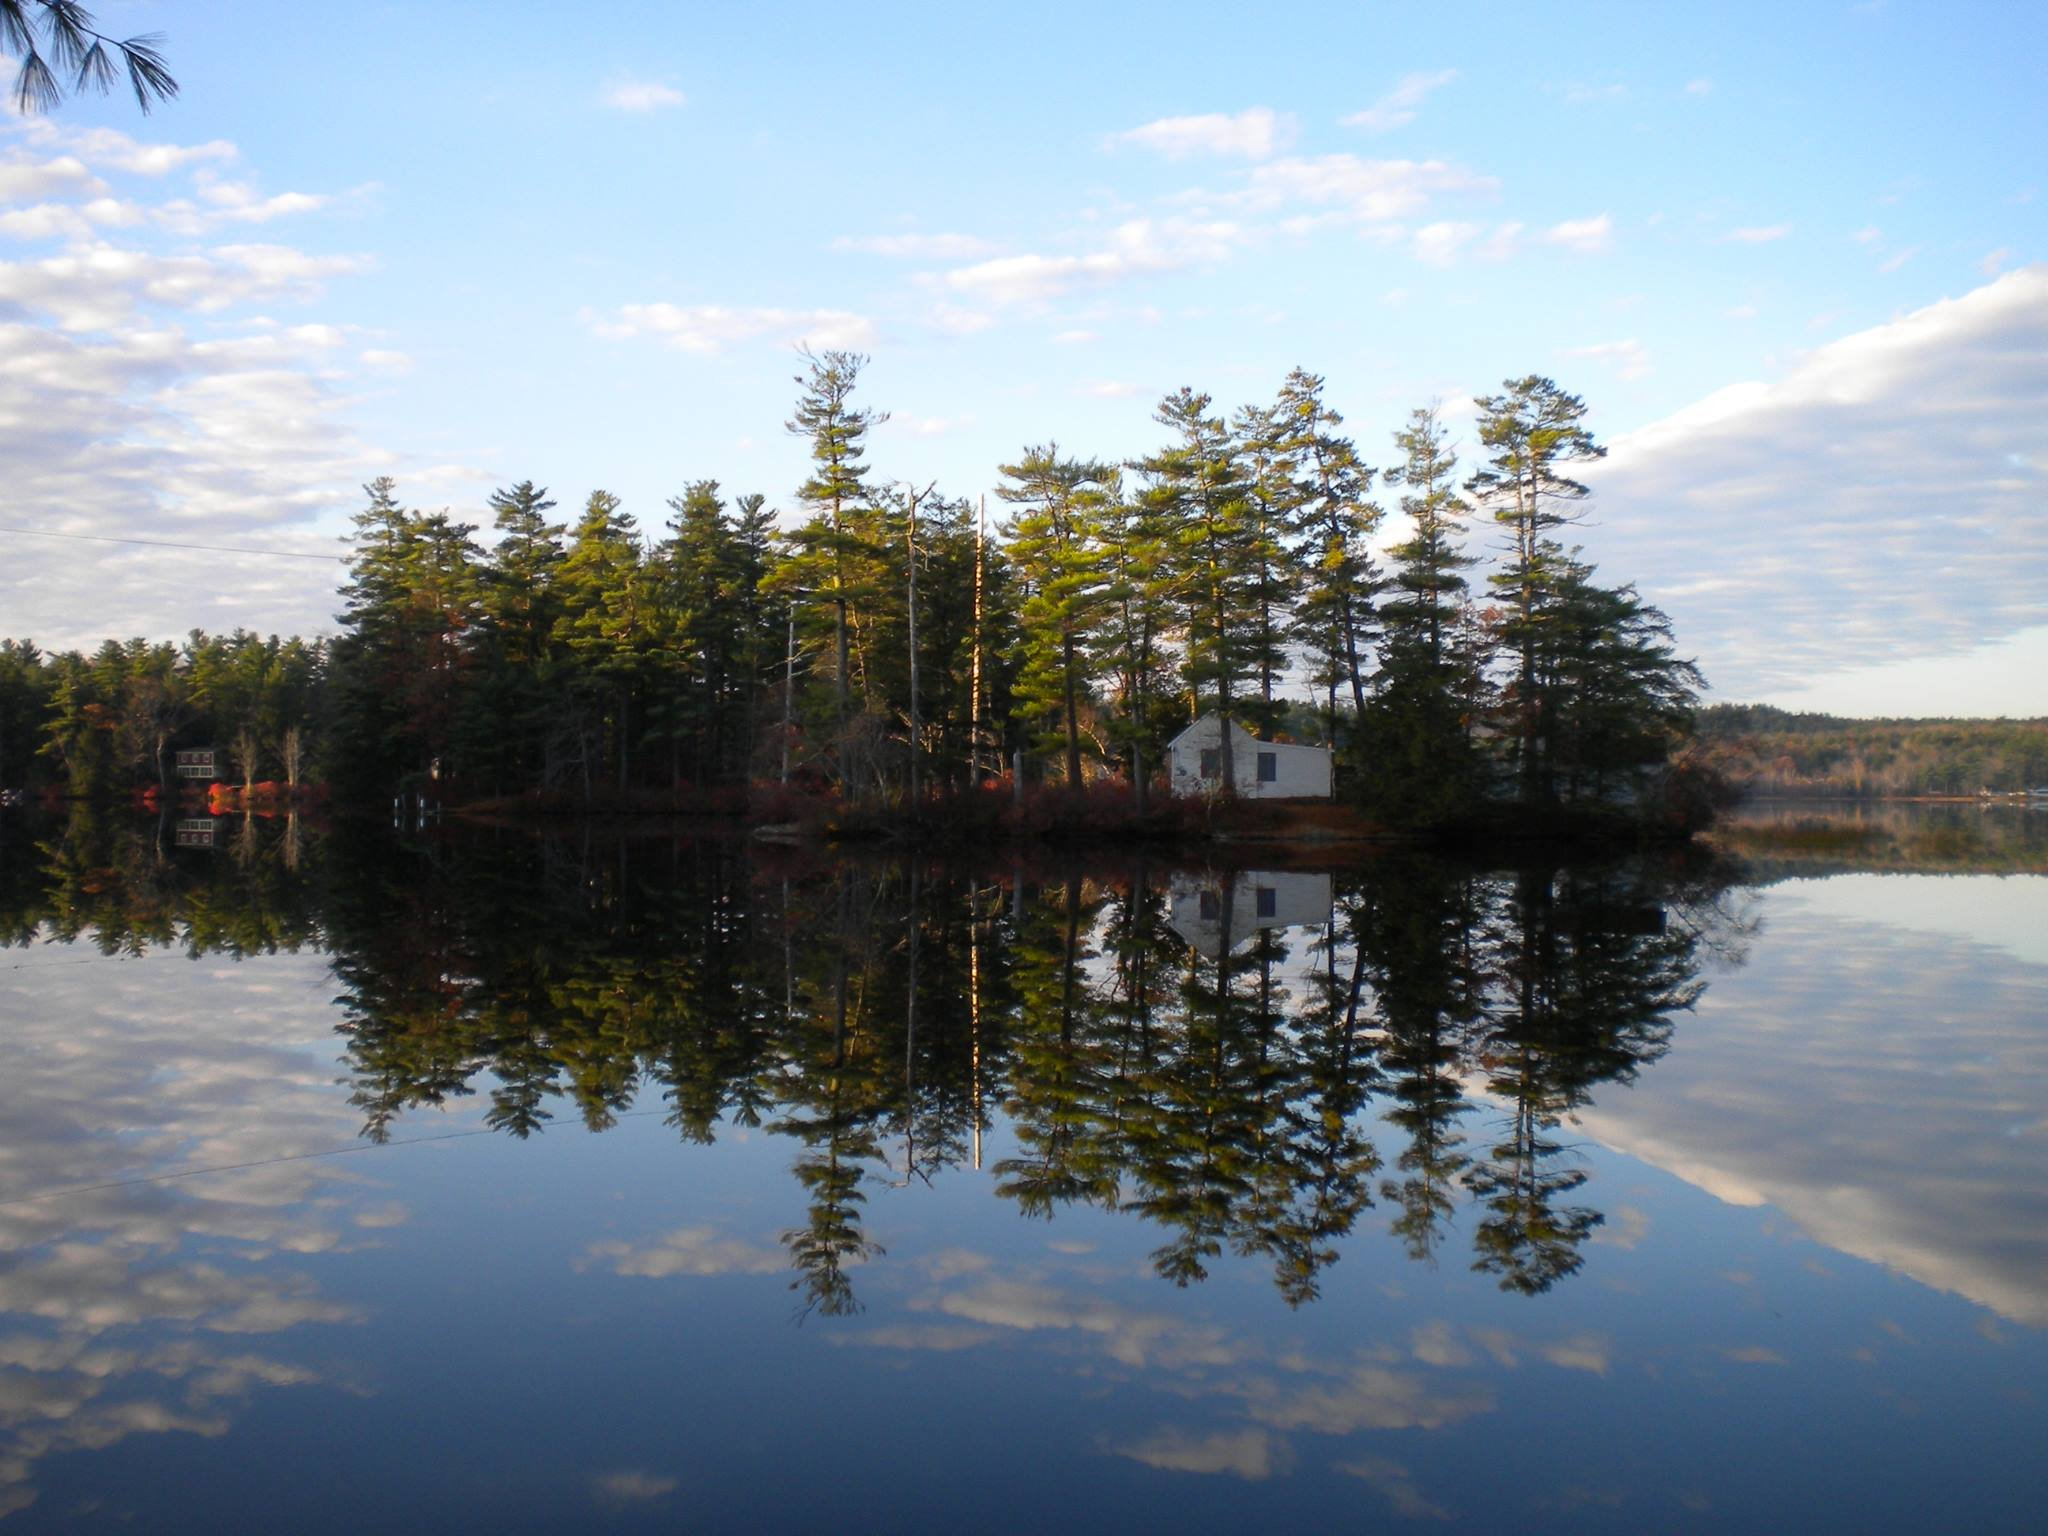 A clear view of tiny Loon Island on a perfectly calm day on Forest Lake, Gray, ME